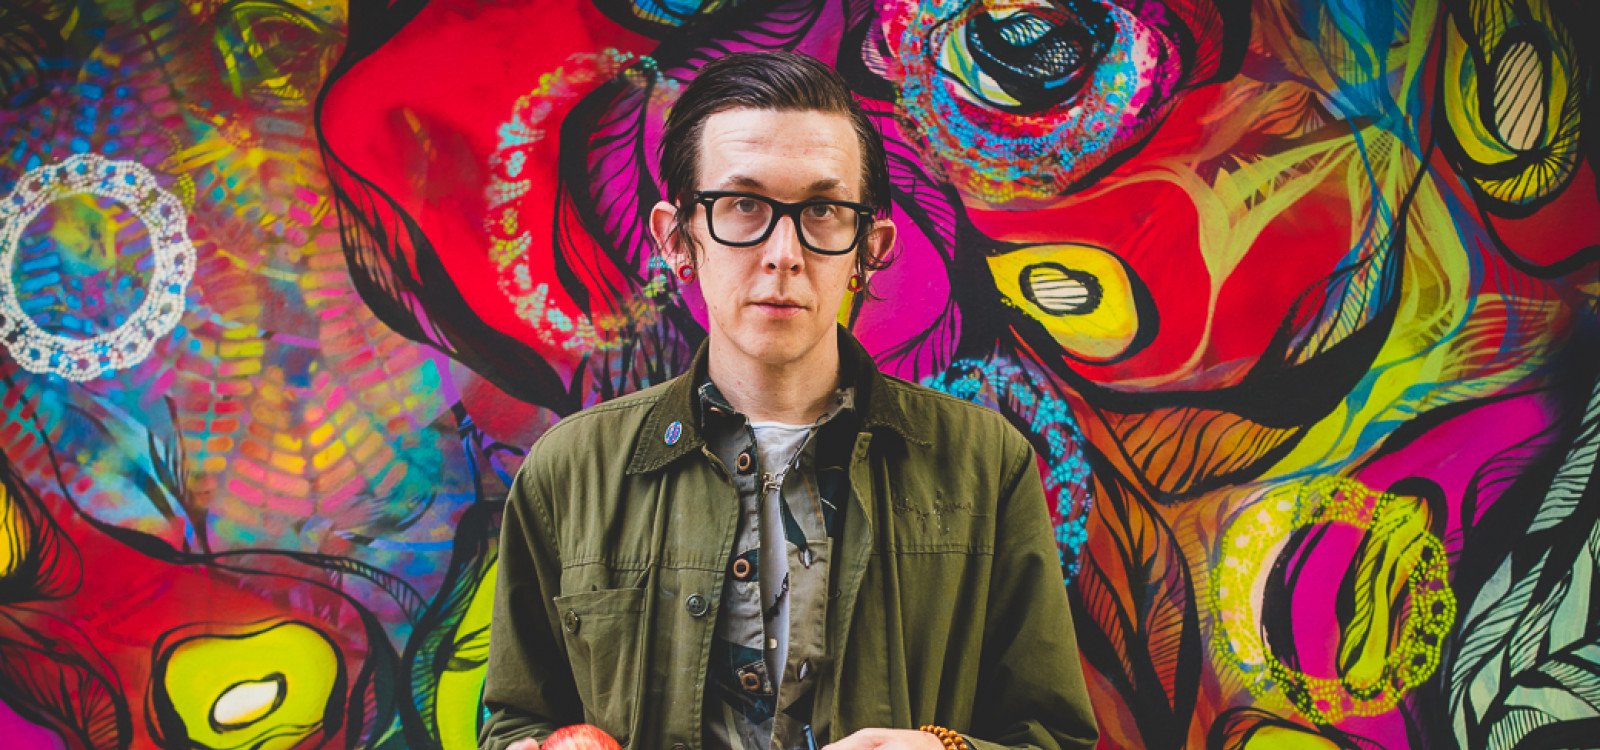 Micah P. Hinson Bologna 2017, street art and apple